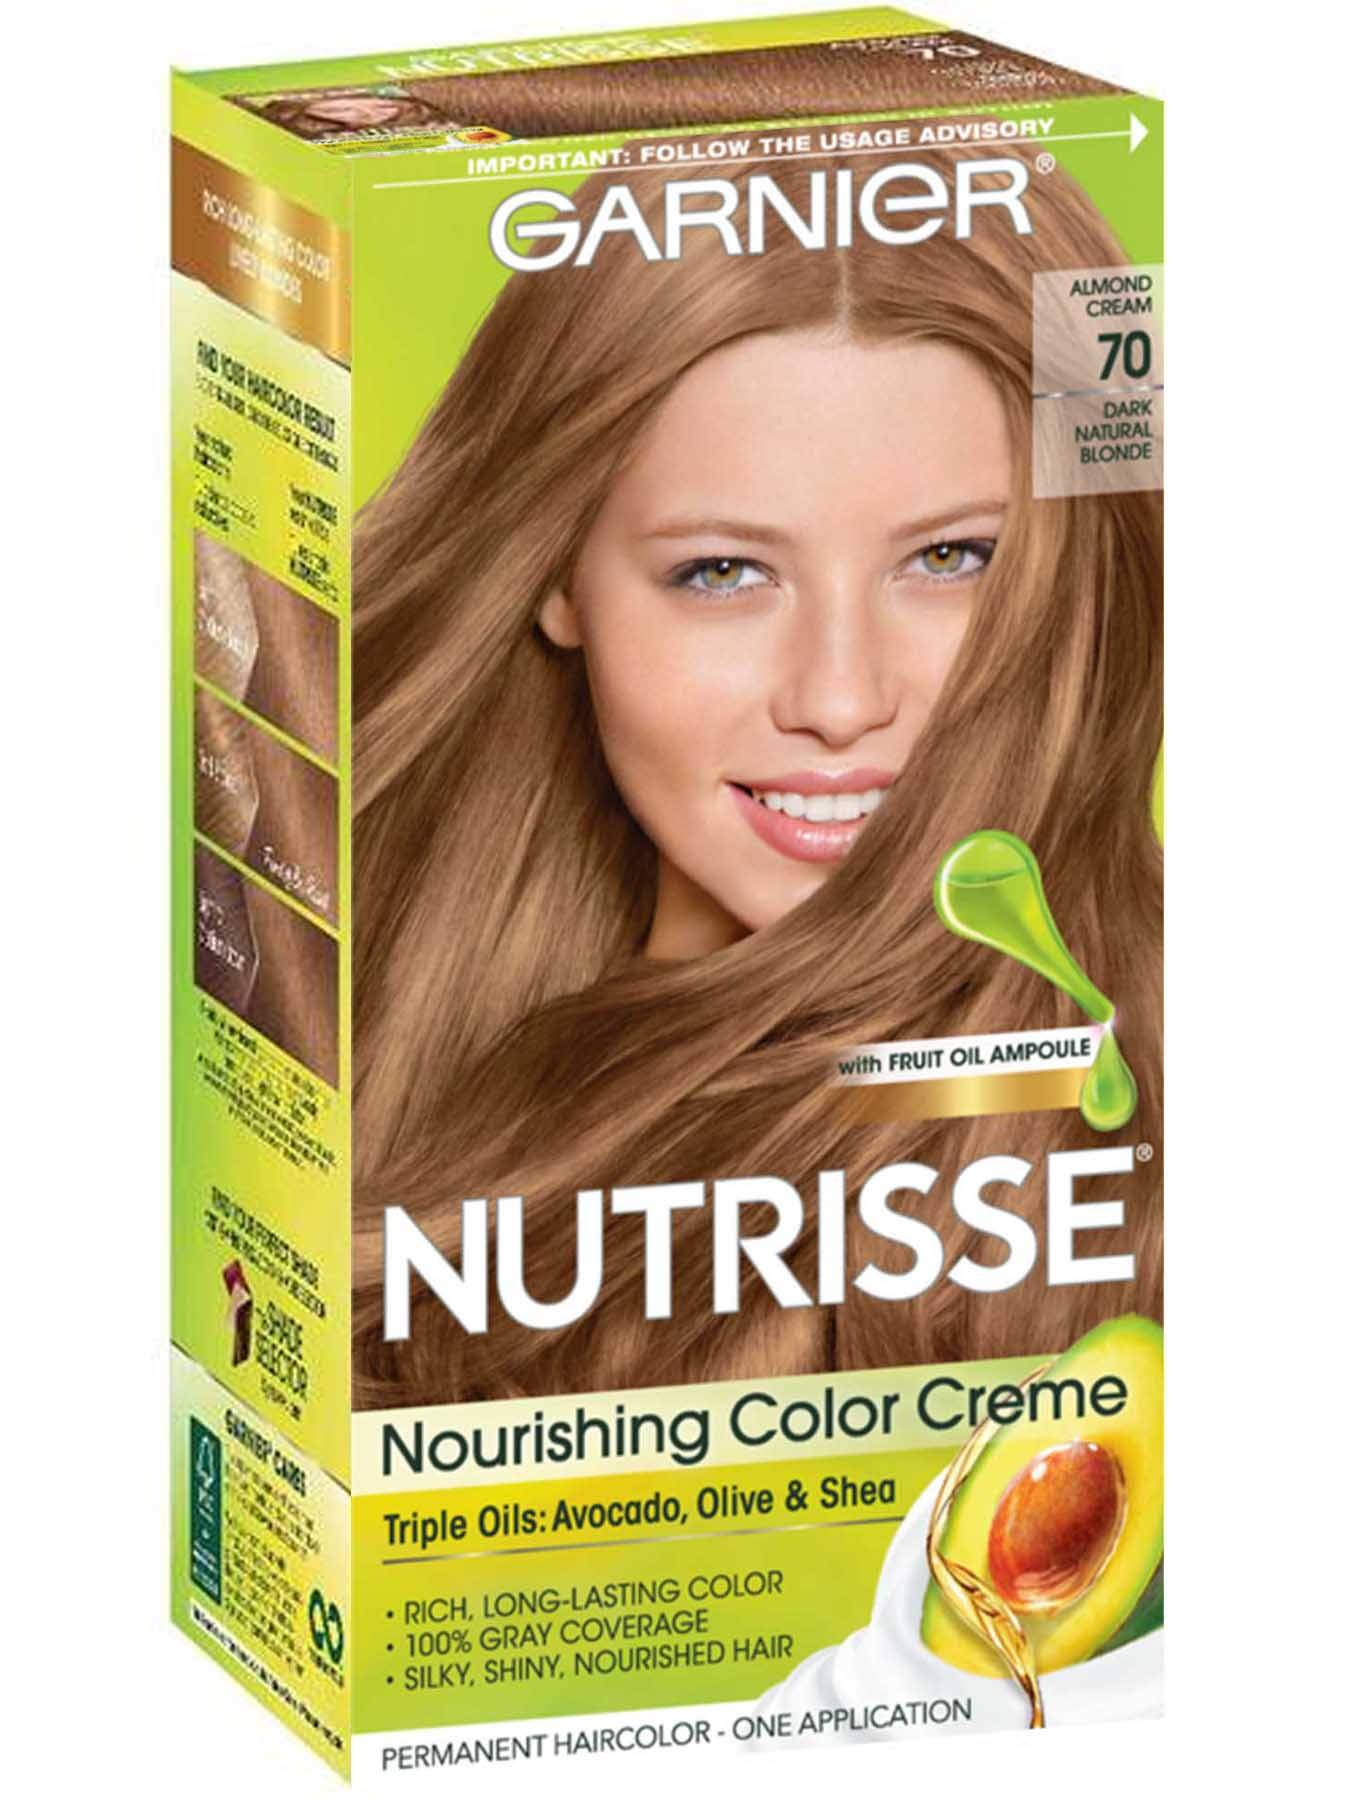 Nourishing Color Creme - Dark Natural Blonde 70 - Garnier